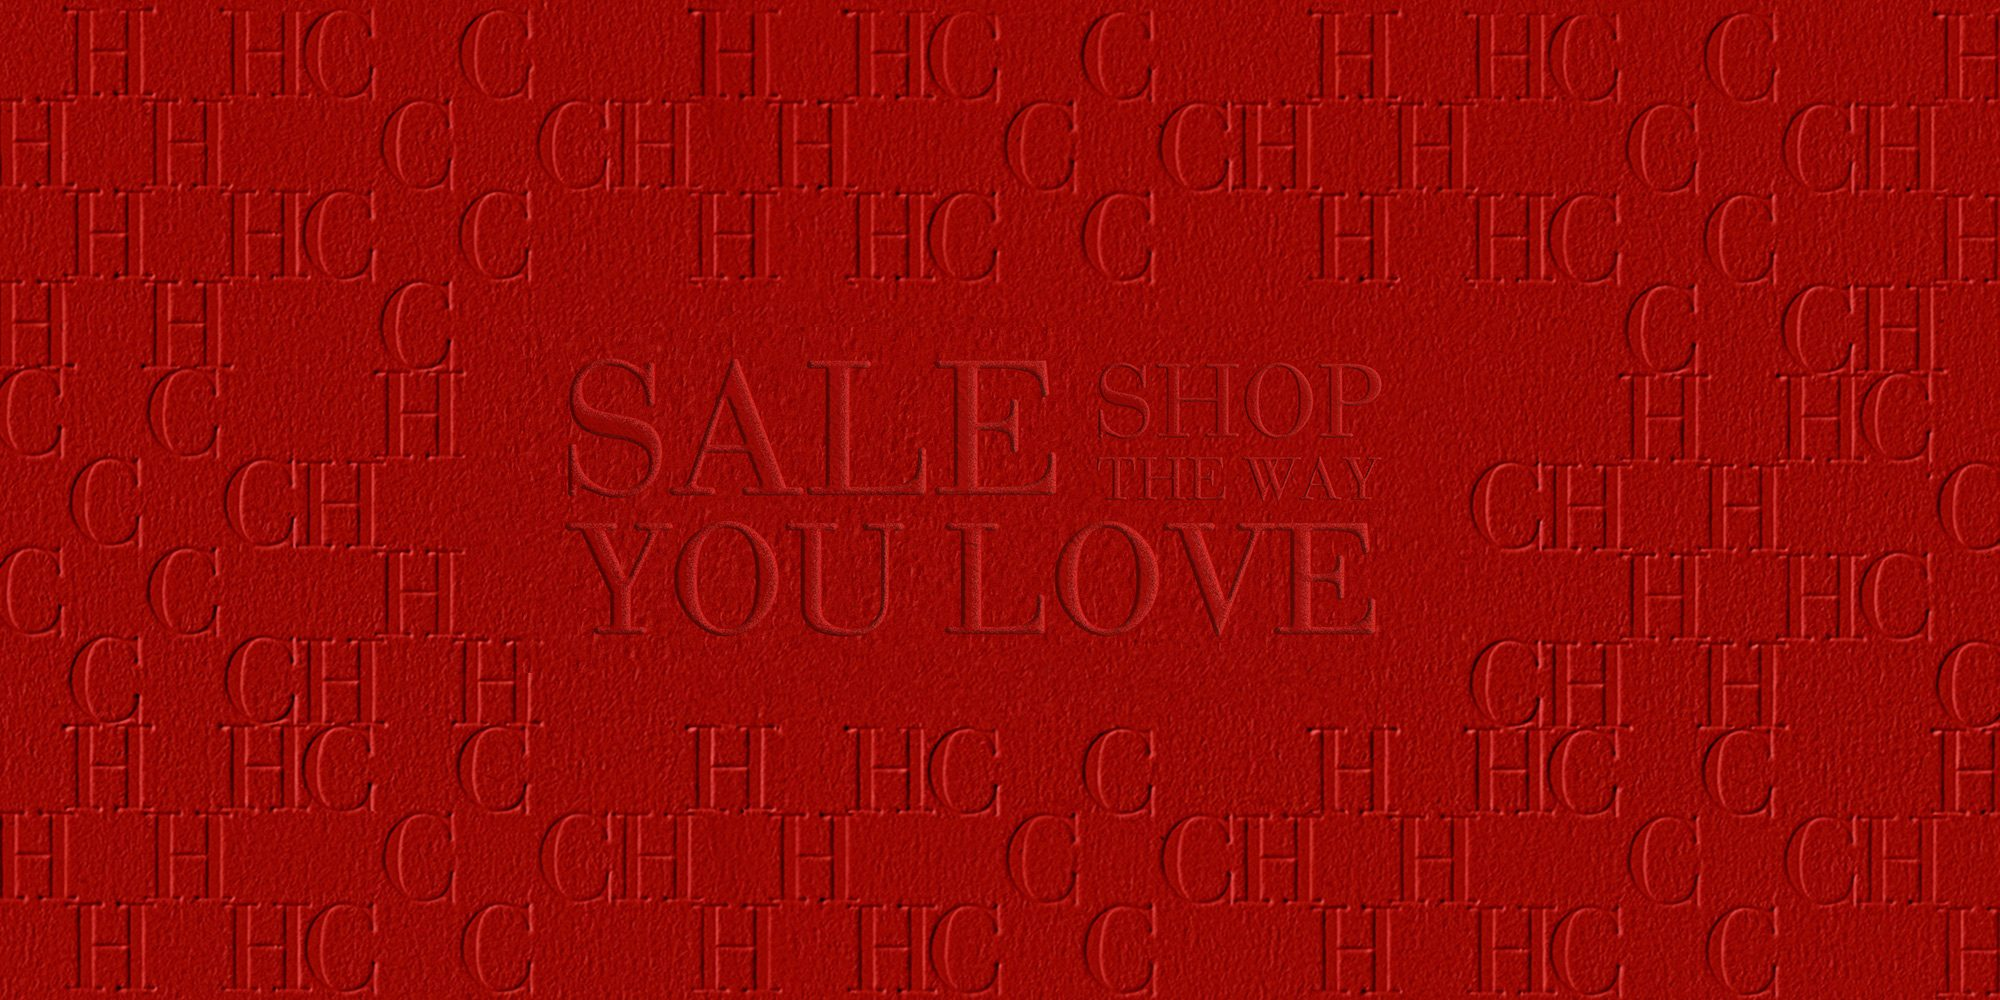 SHOP THE WAY YOU LOVE  SALE